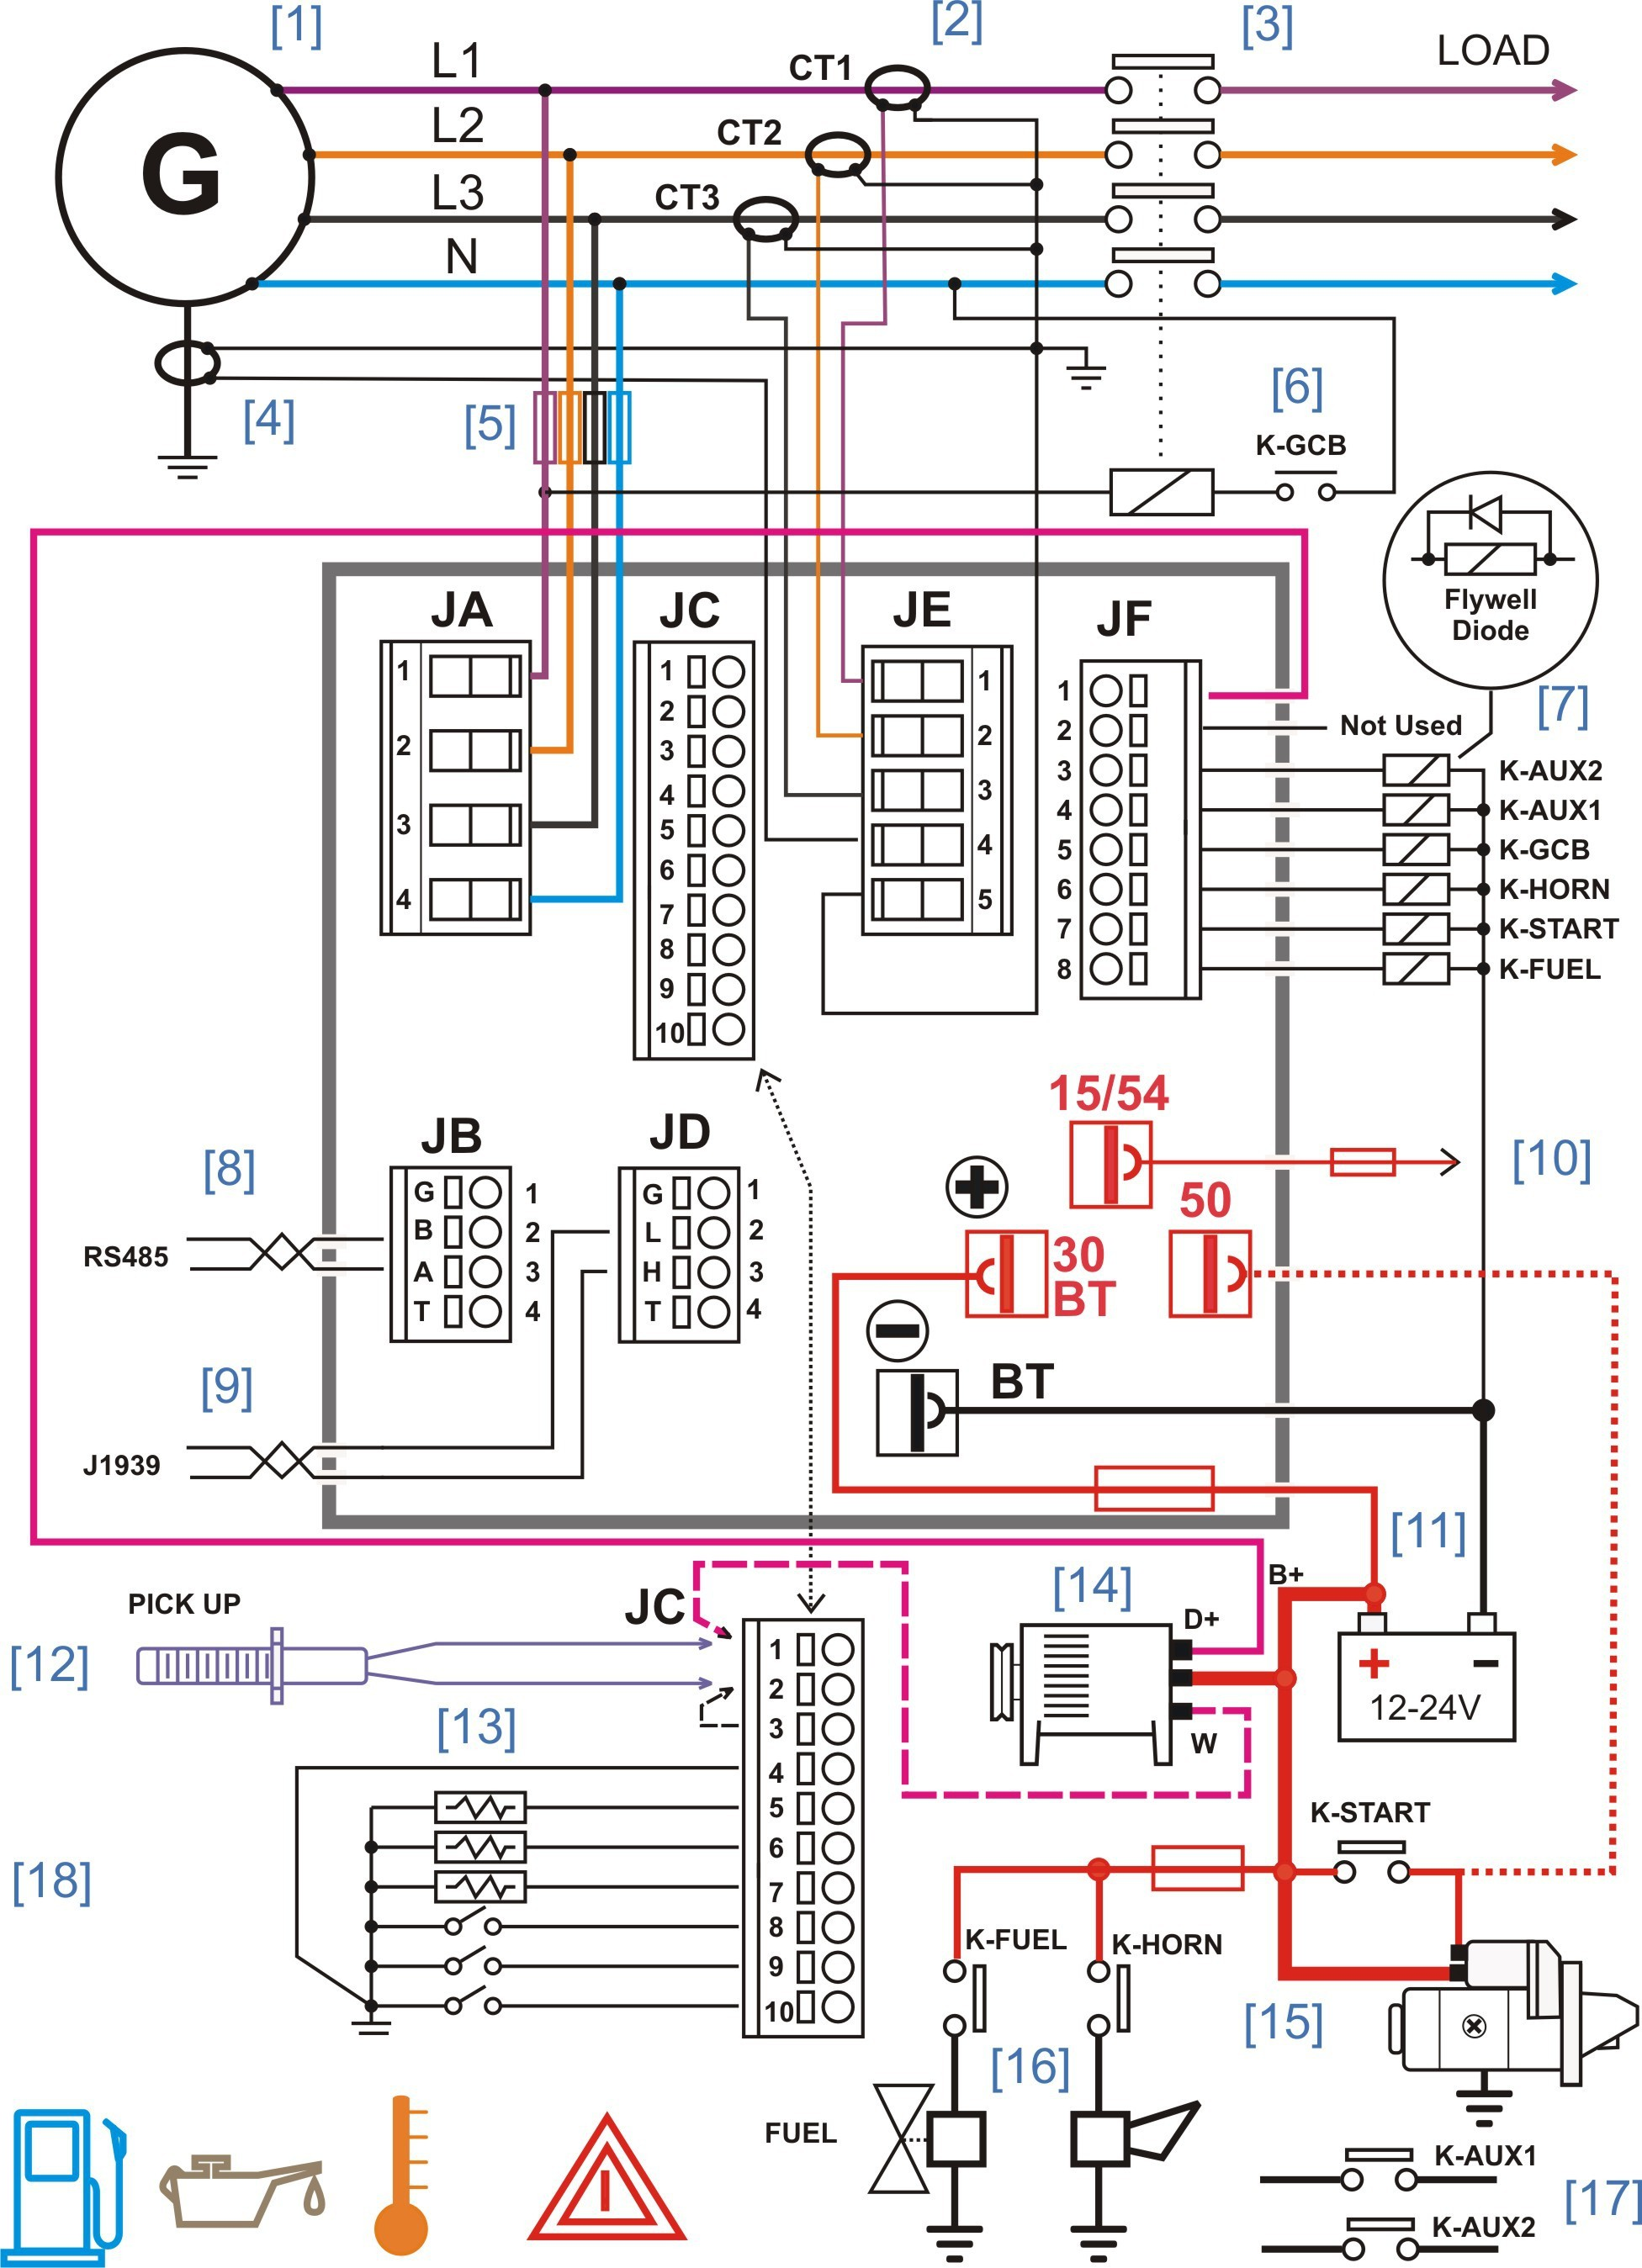 kib wiring harnesses schematics wiring diagrams u2022 rh seniorlivinguniversity co EZ Wiring GM Wiring Harness